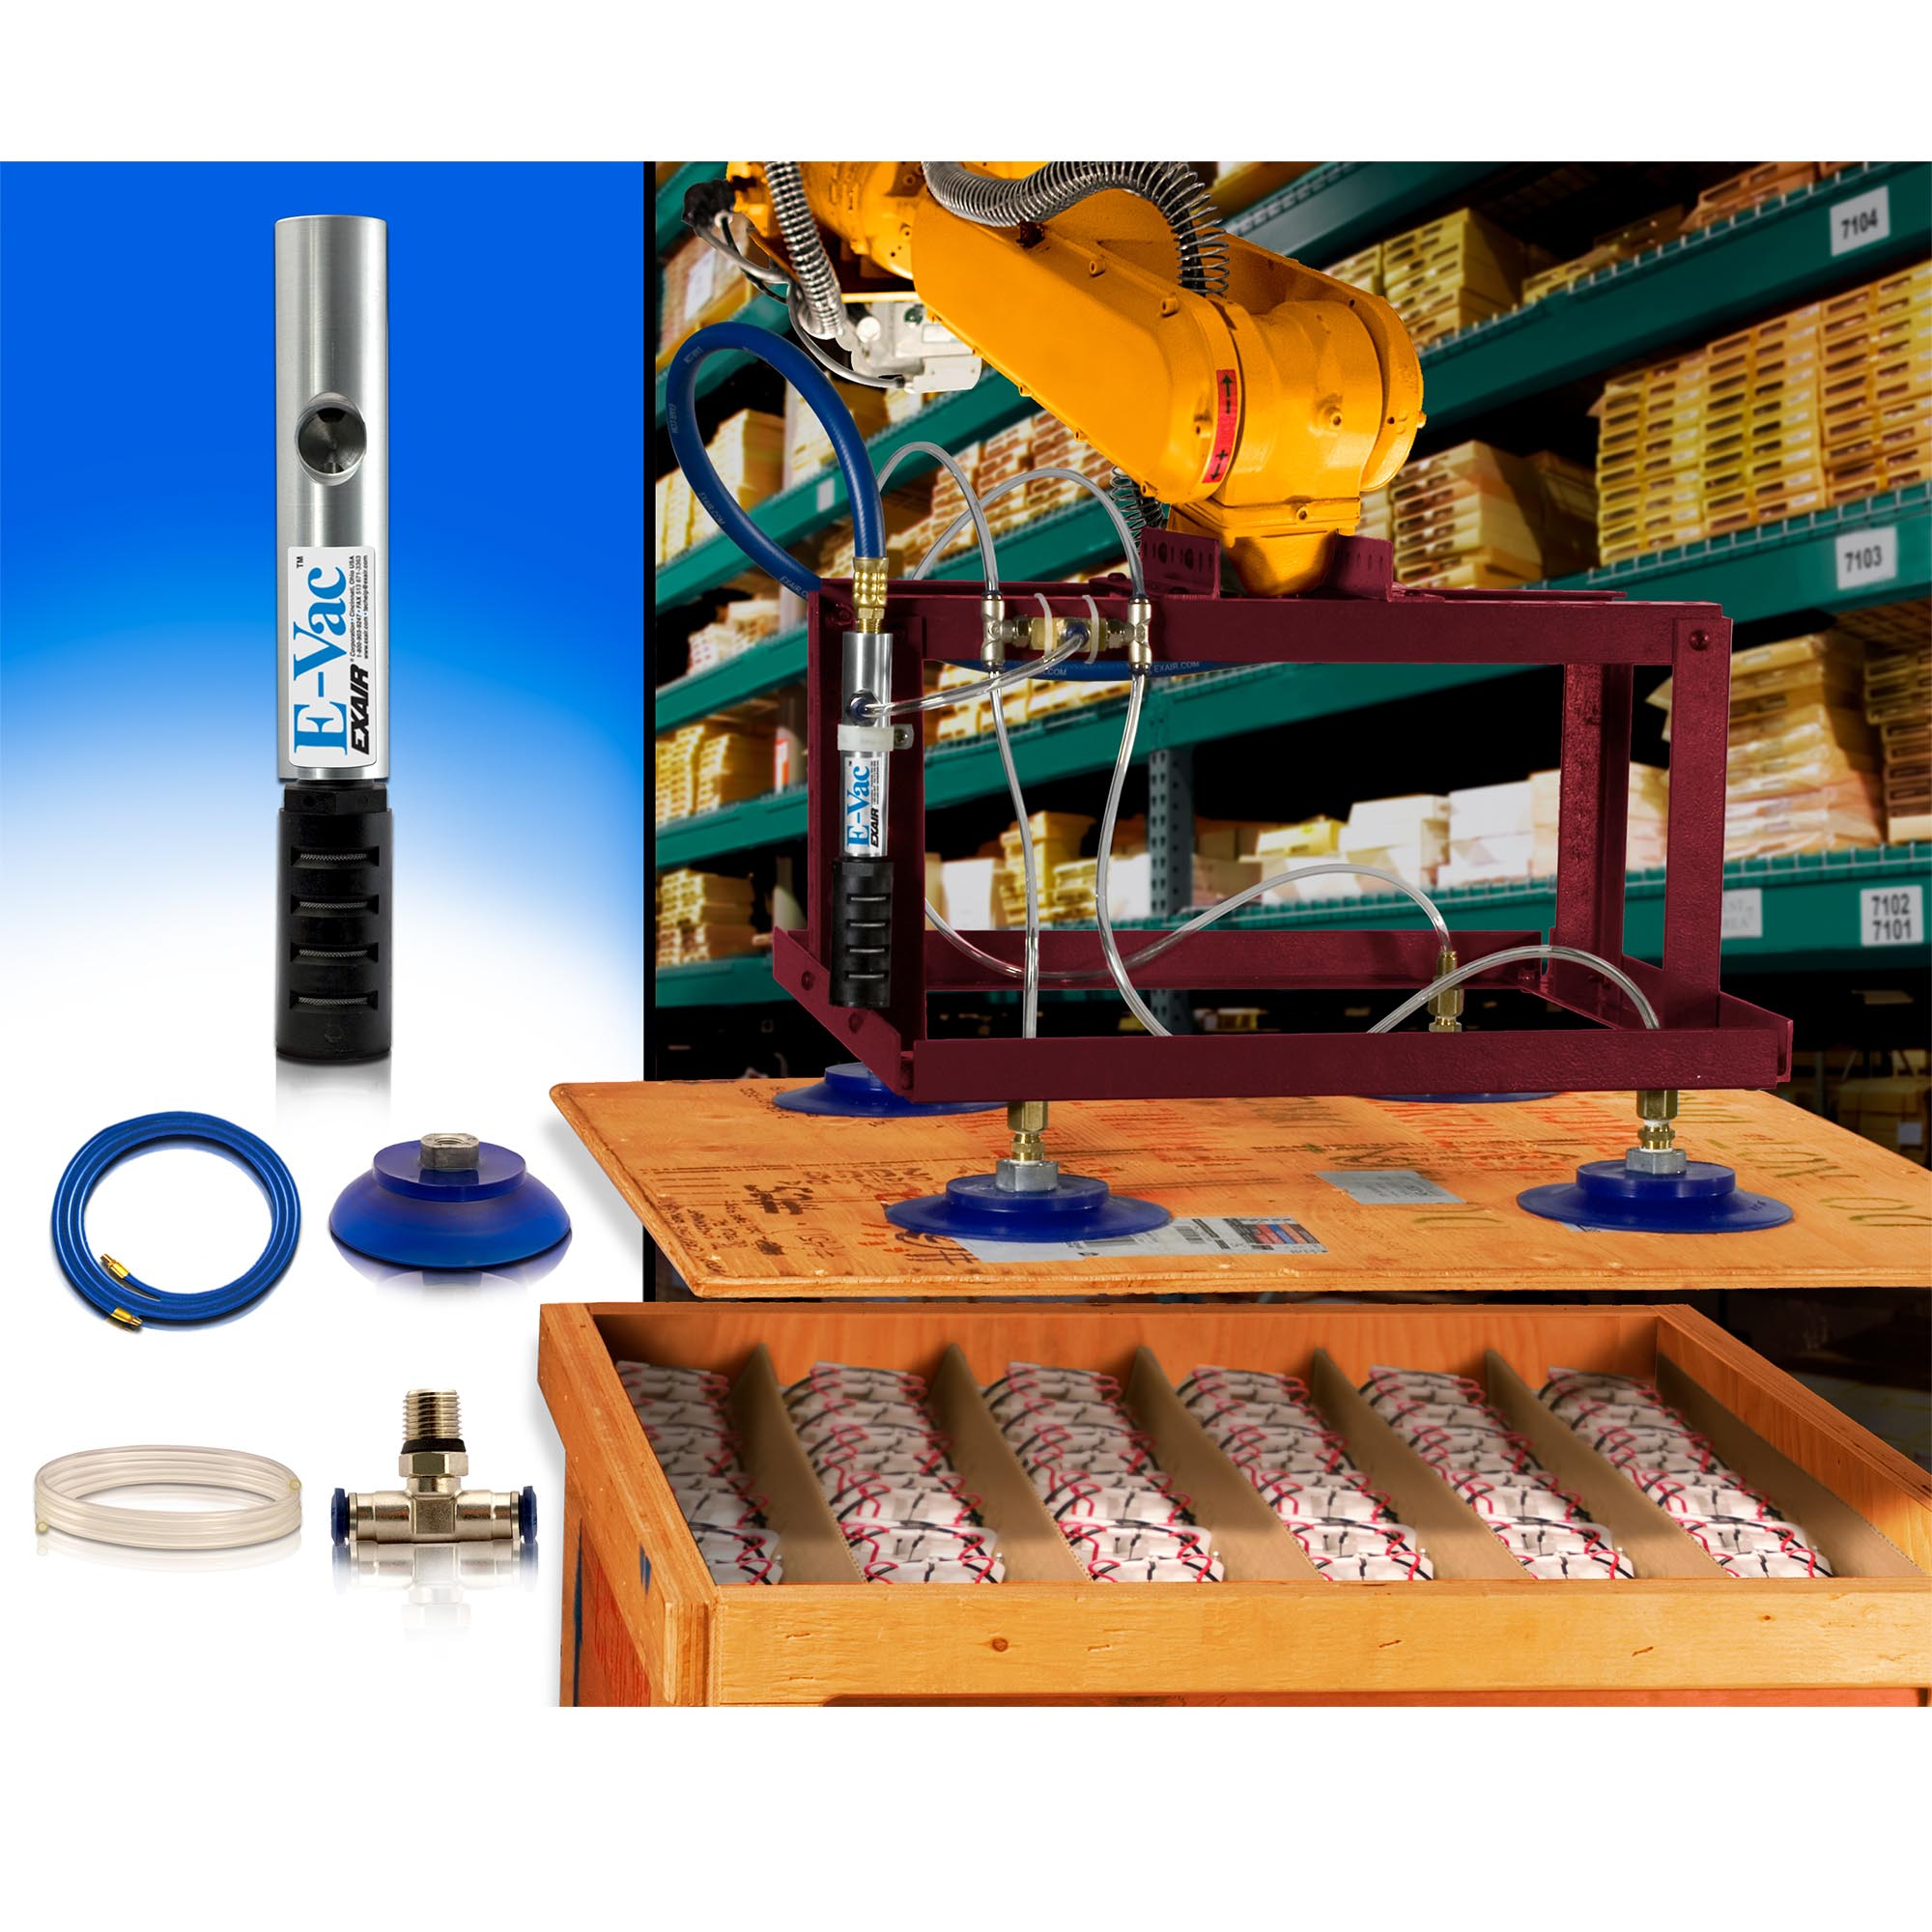 The In-Line E-Vac (porous version) is used to lift the plywood lid of a crate in a receiving department.